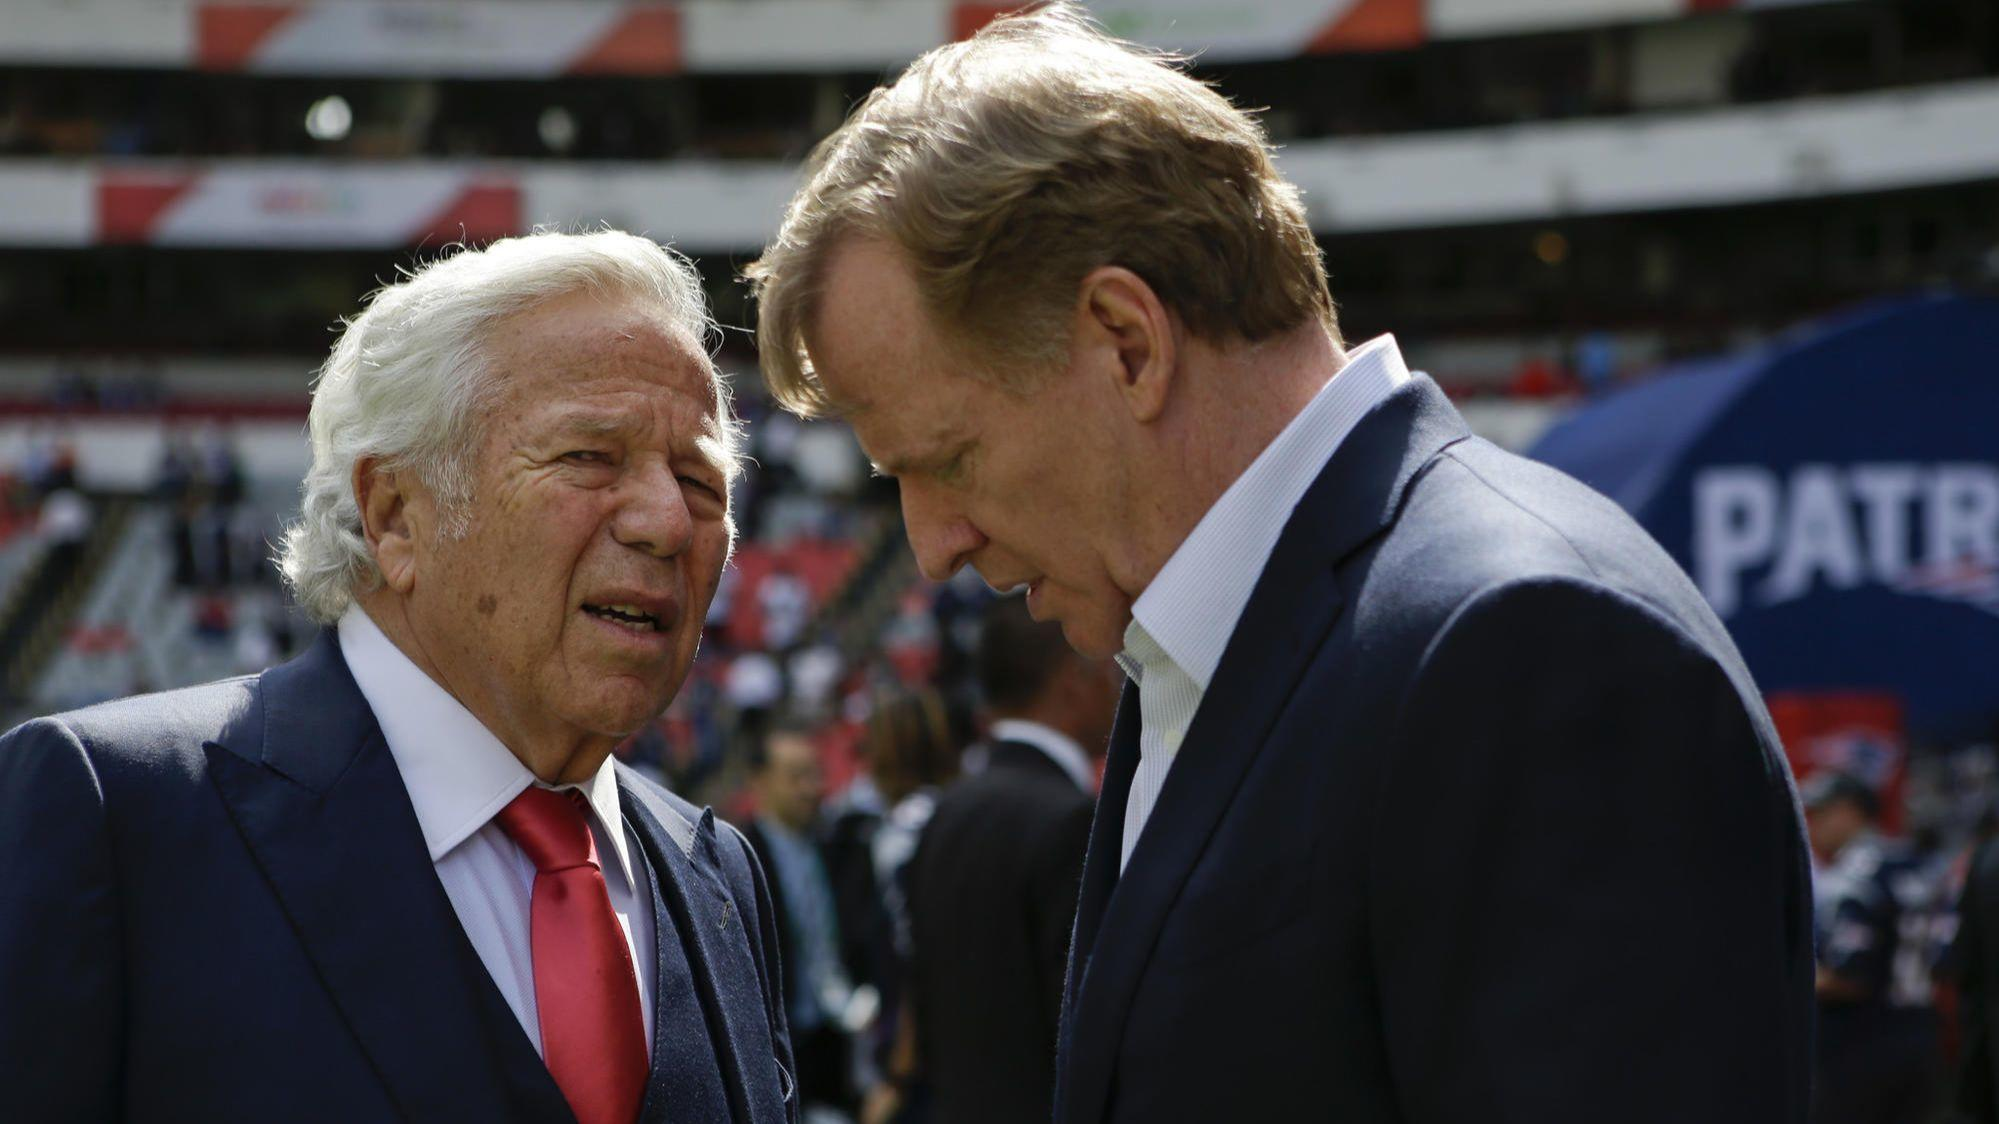 NFL commissioner Roger Goodell has wide-ranging powers to fine or suspend Pats owner Robert Kraft